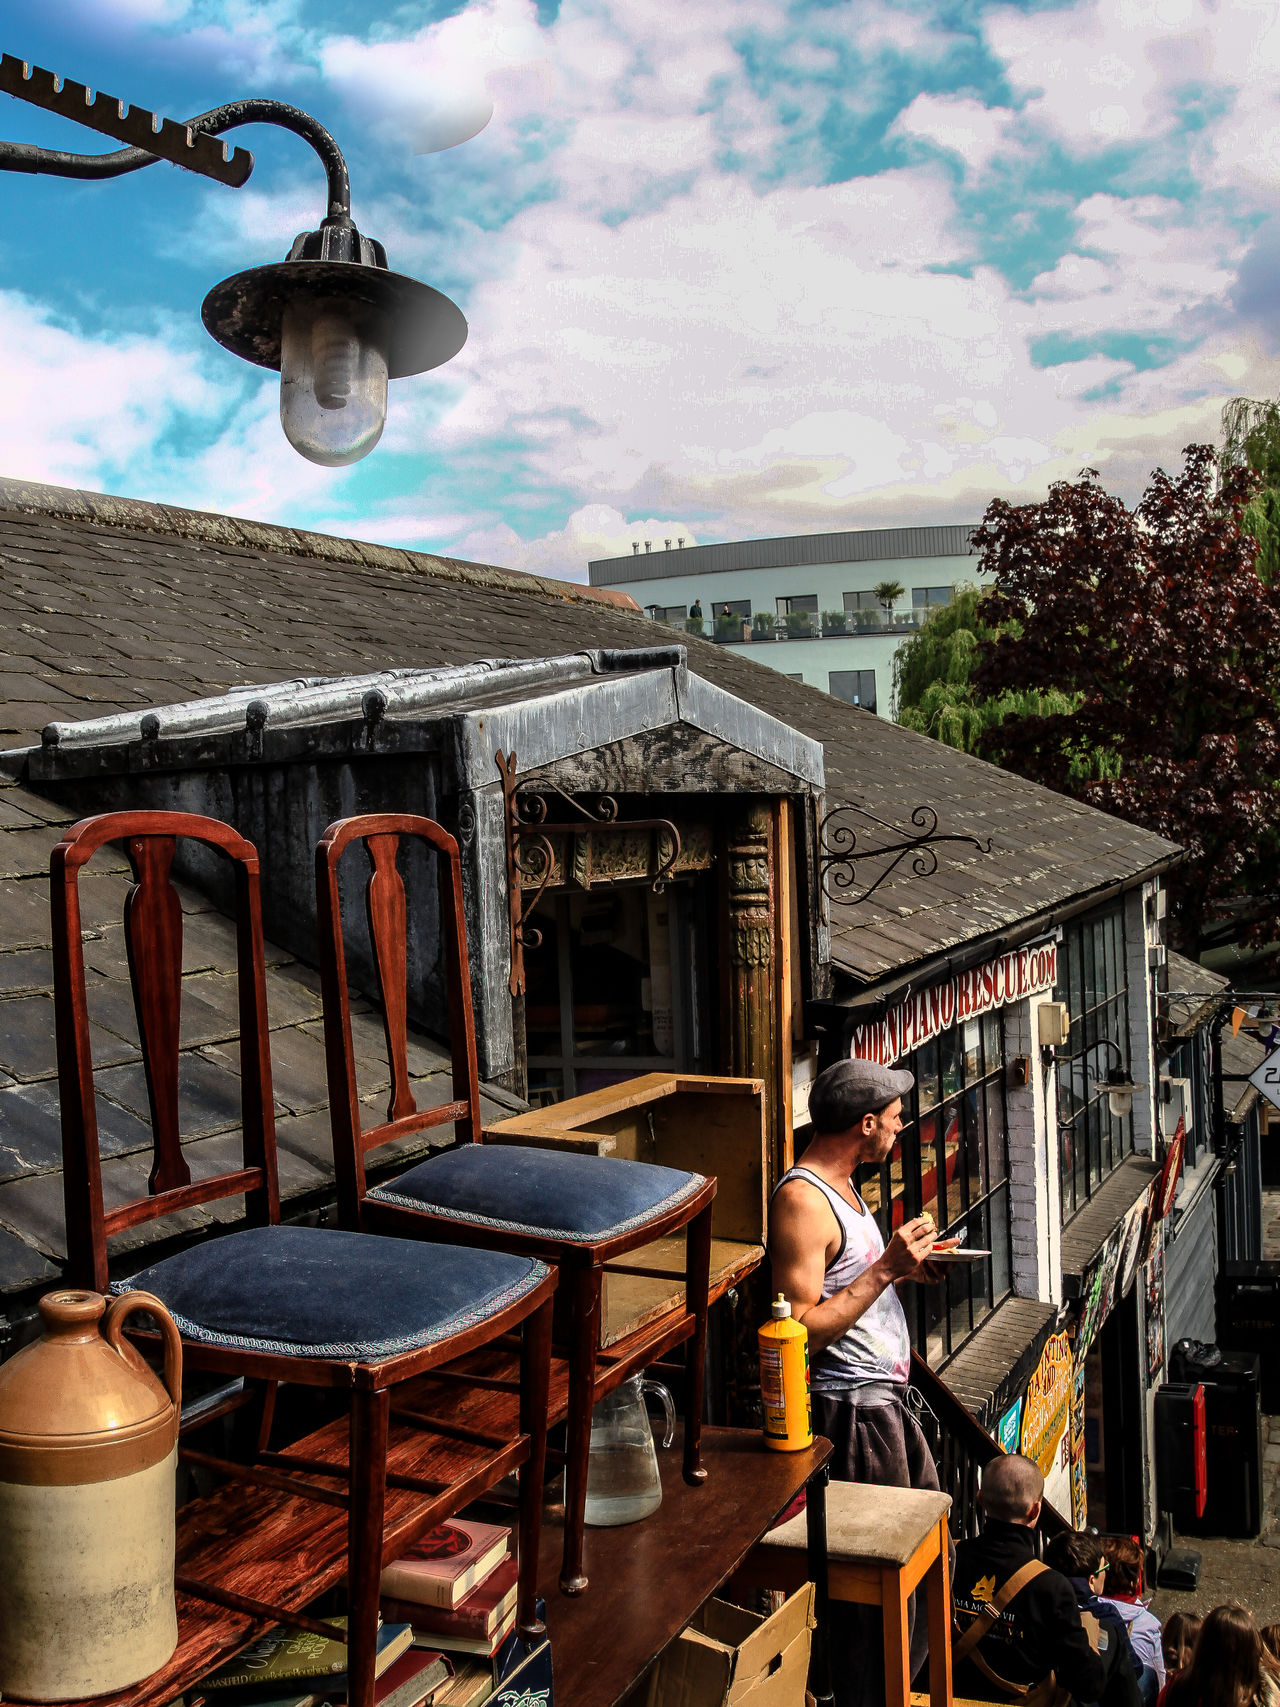 Candem Town Candemlock Chairs Day Furnishing Furniture Restoration Lamp Lunch Time! Man Outdoors Roof Sky Street Lunch Streetphotography The Street Photographer - 2017 EyeEm Awards Tshirt BYOPaper! Live For The Story Place Of Heart